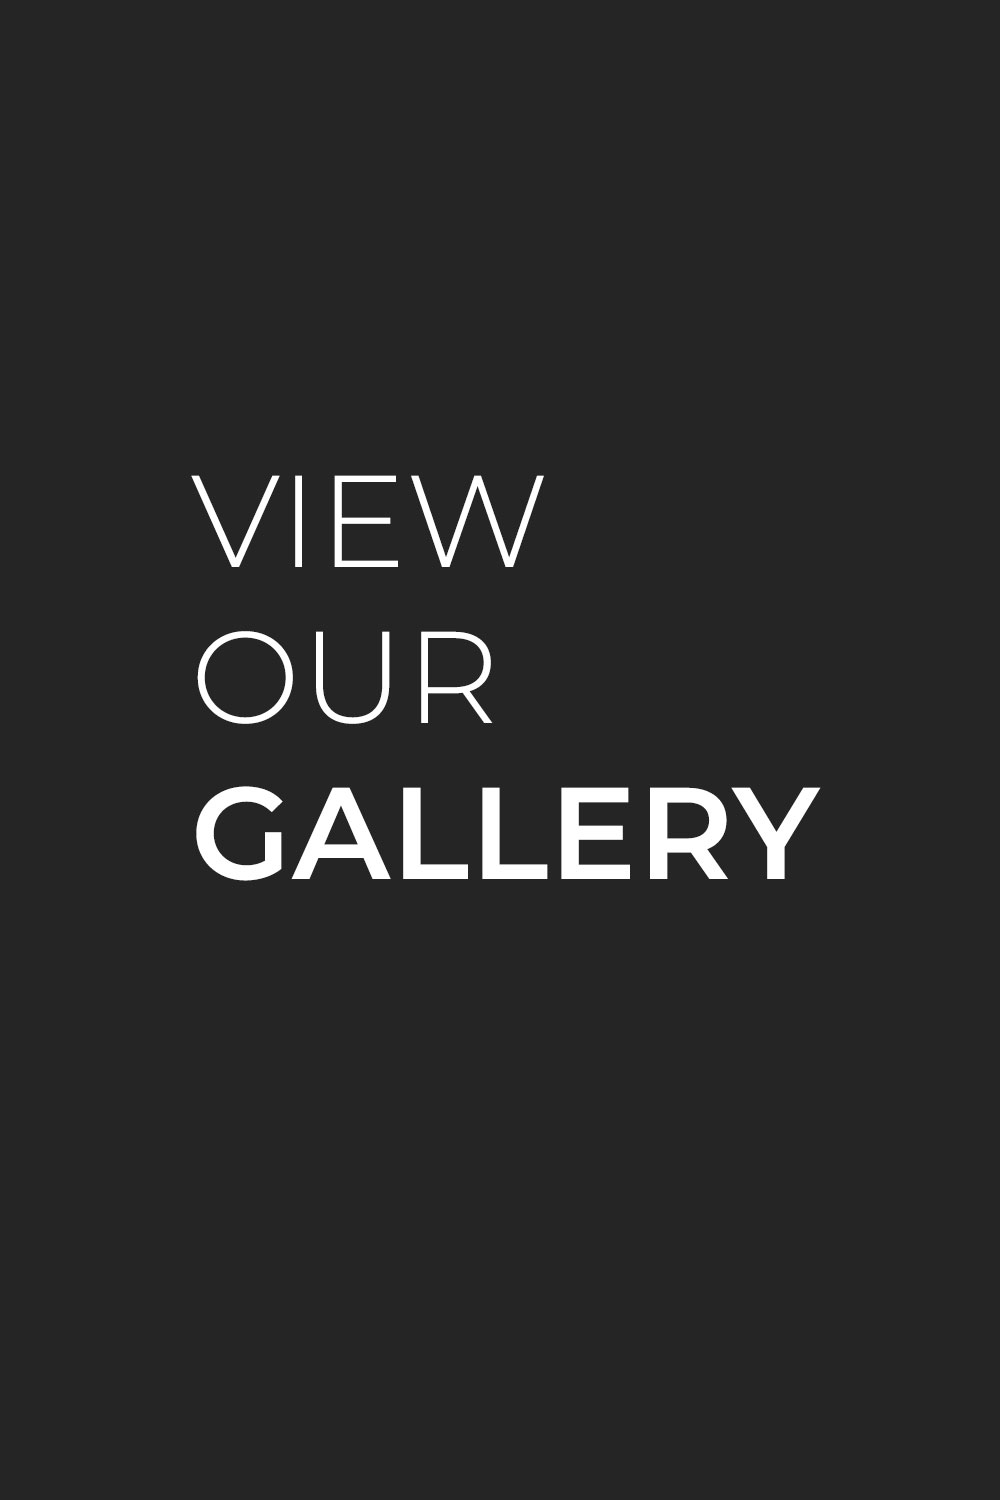 image gallery text